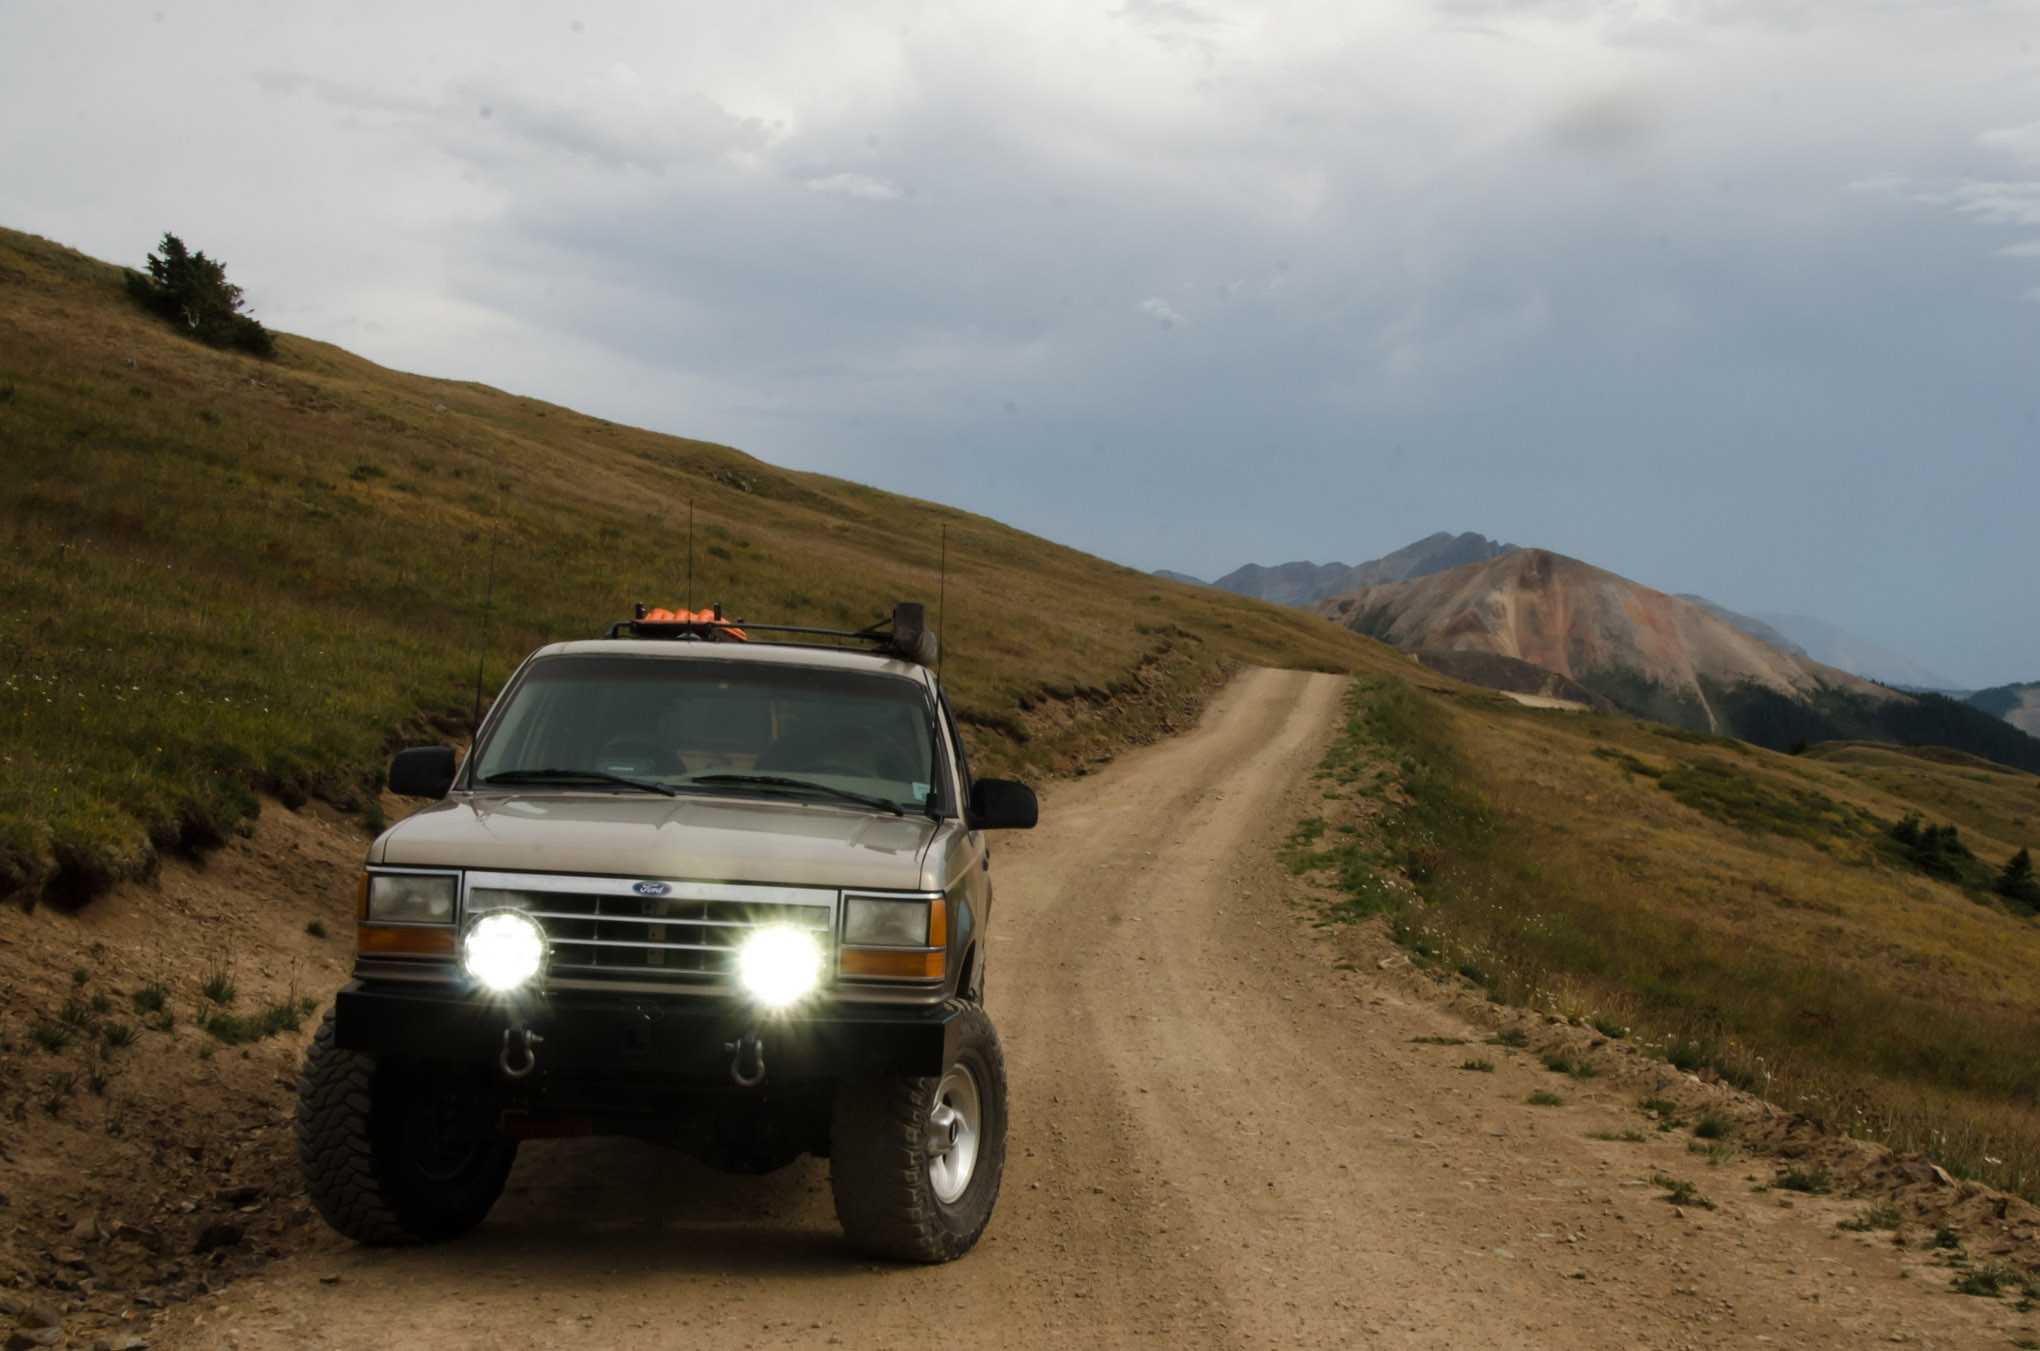 vision x adv light cannons ford explorer colorado mountains lead